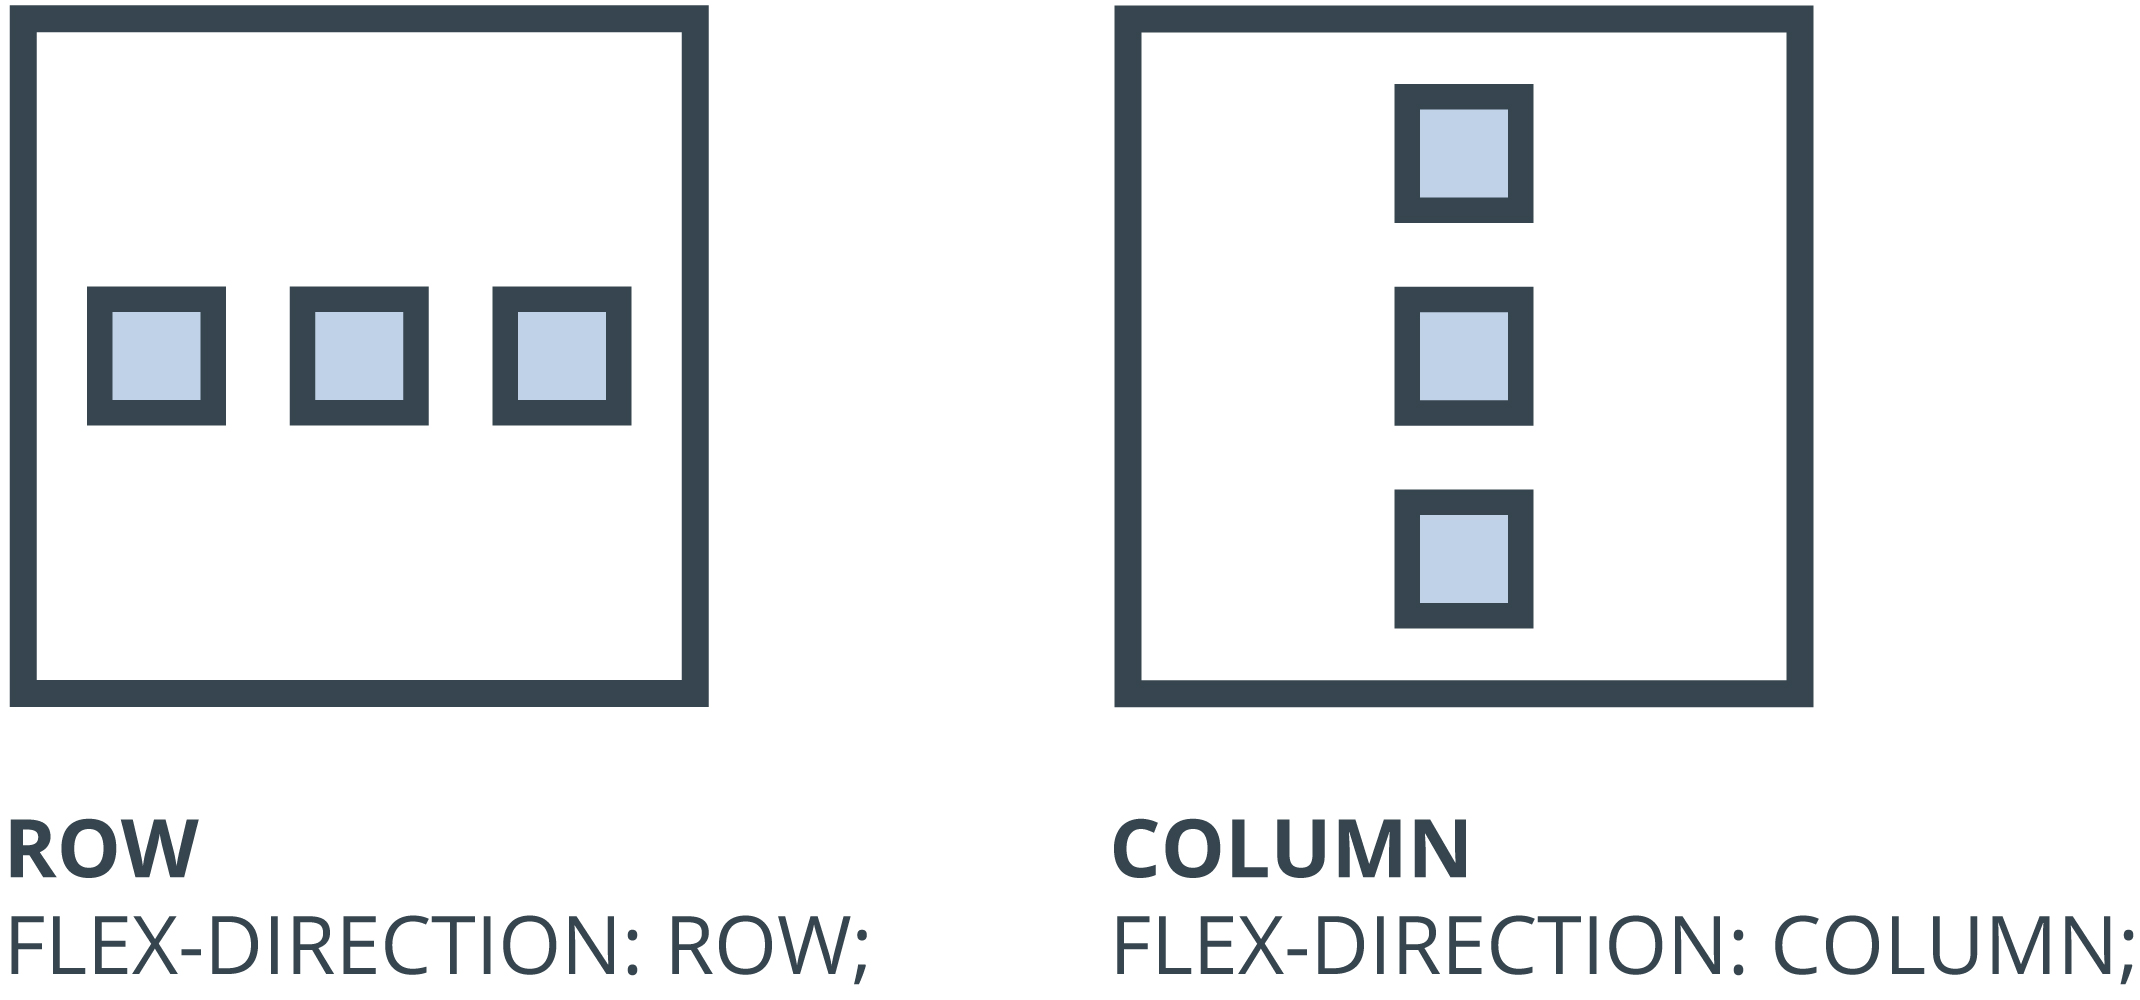 Css flexbox direction row vs column